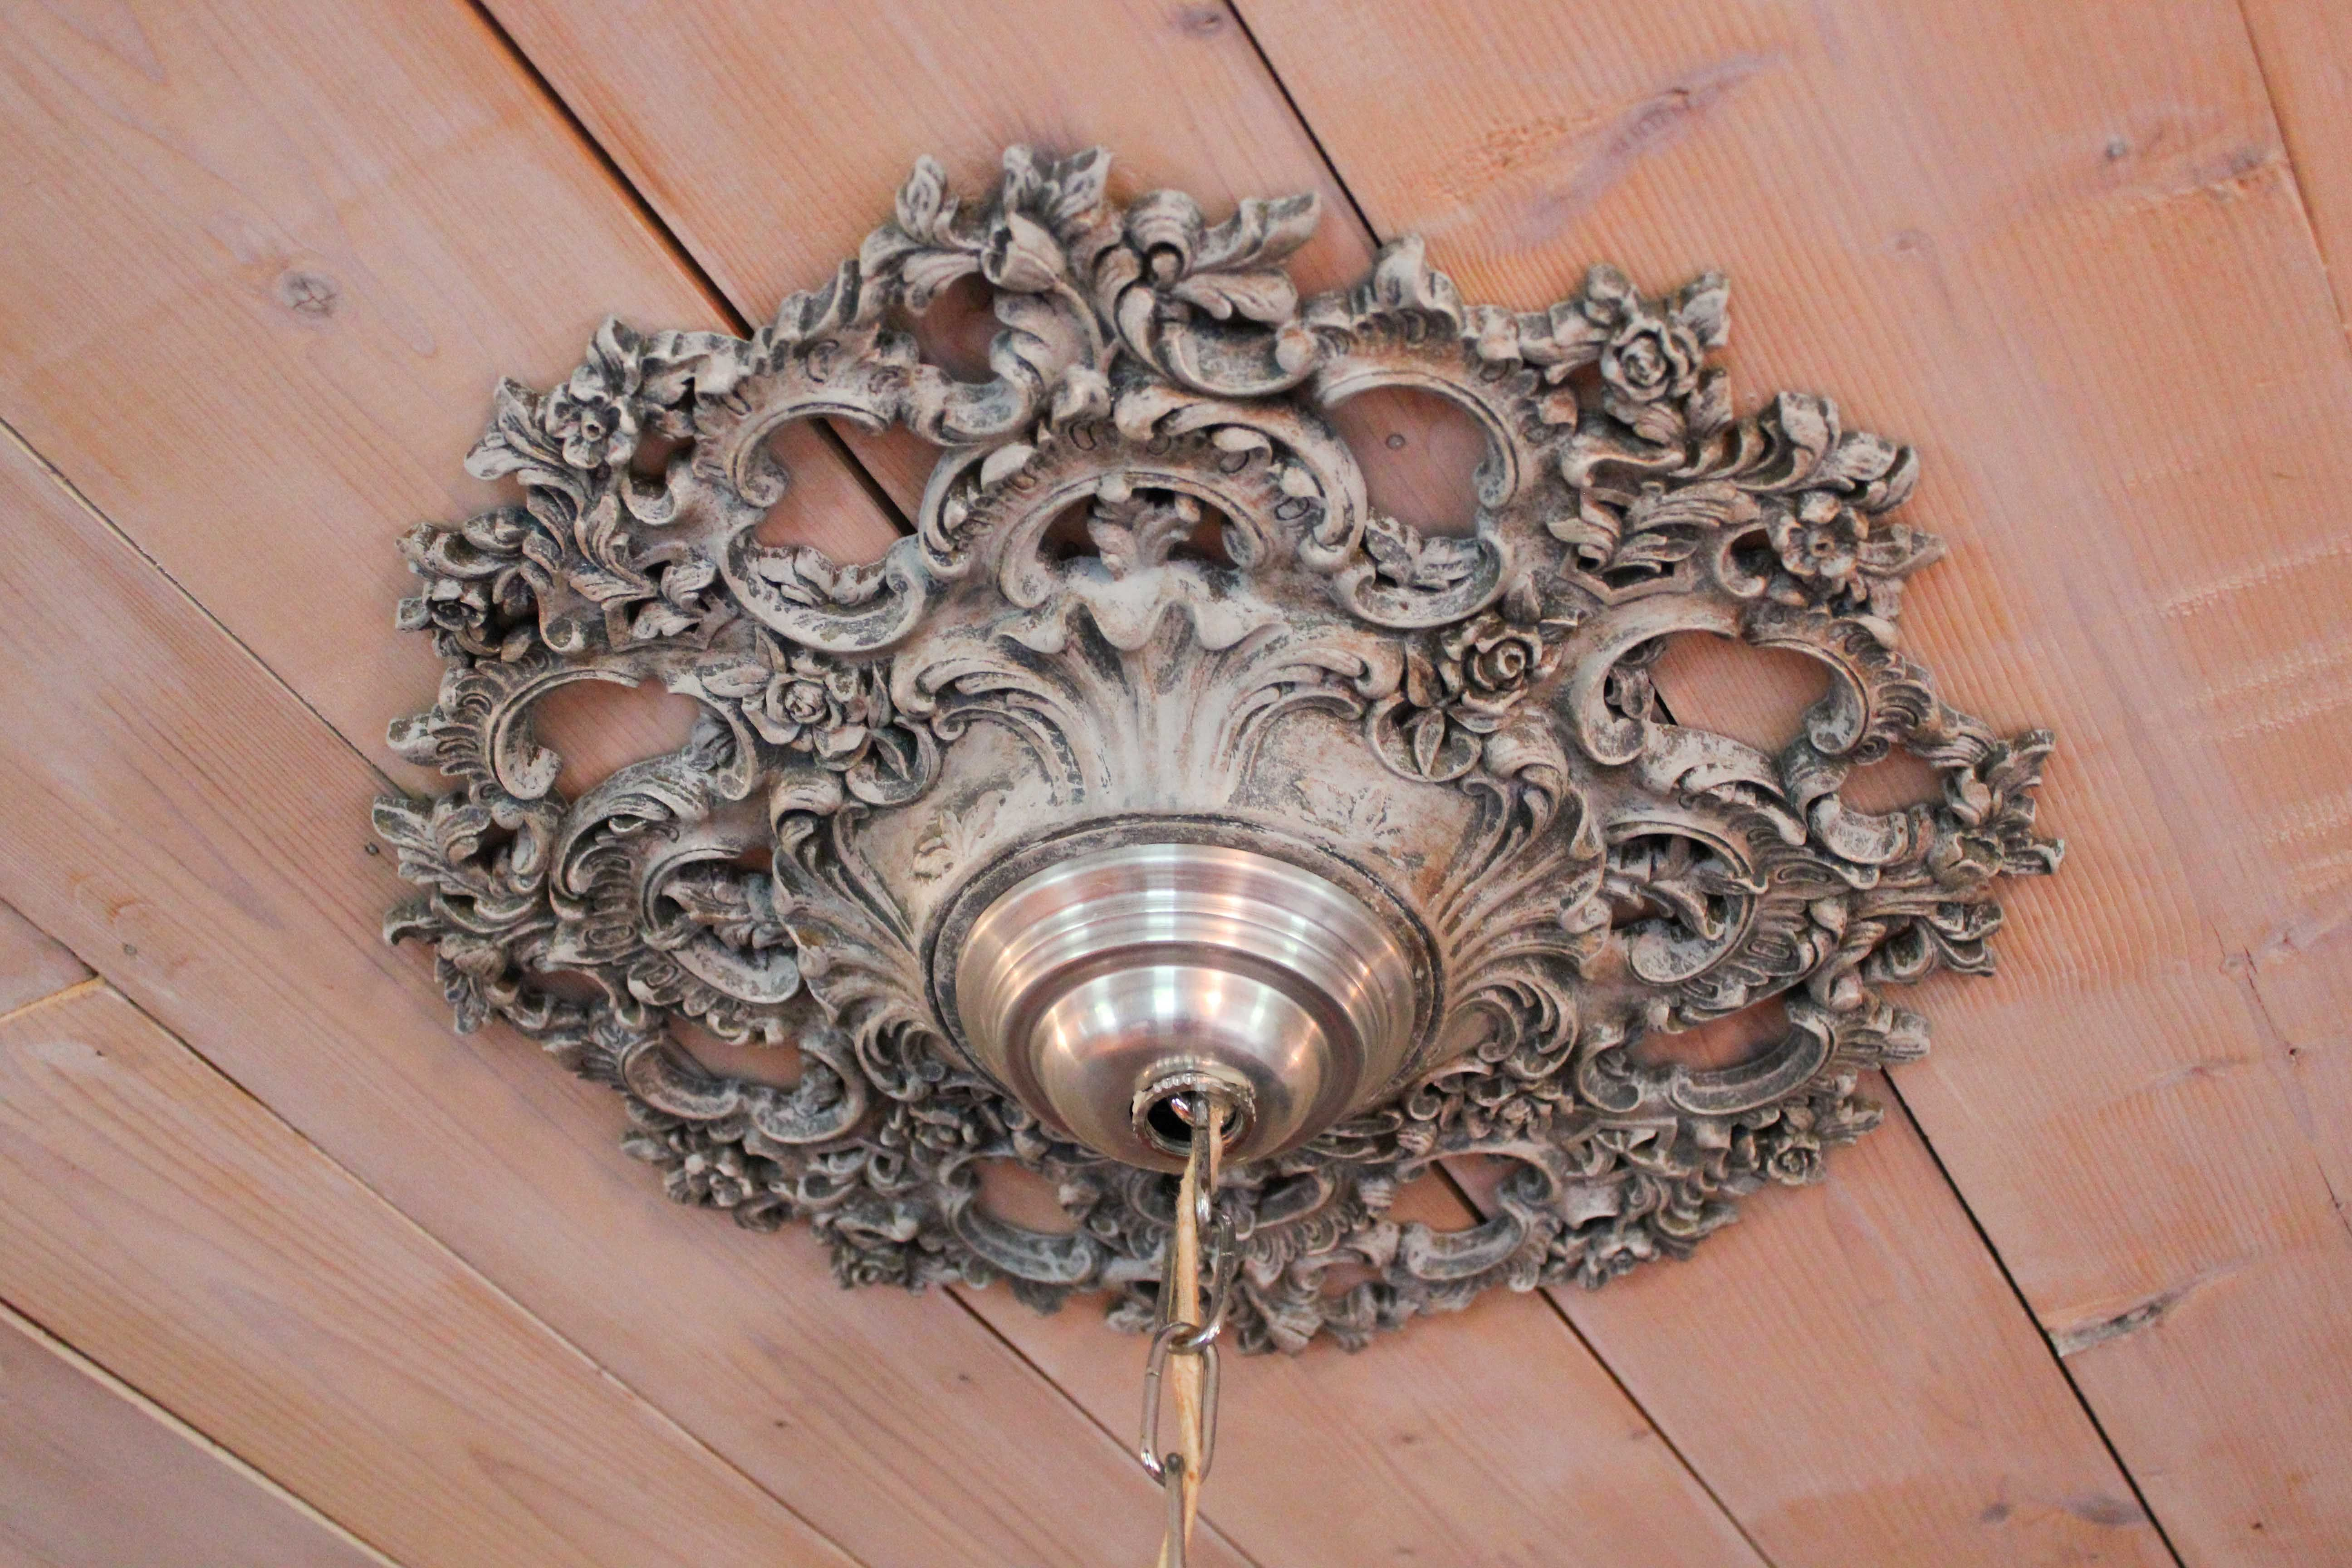 How to make a diy chandelier medallion lovetoknow blogs home how to make a diy chandelier medallion lovetoknow blogs home aloadofball Choice Image